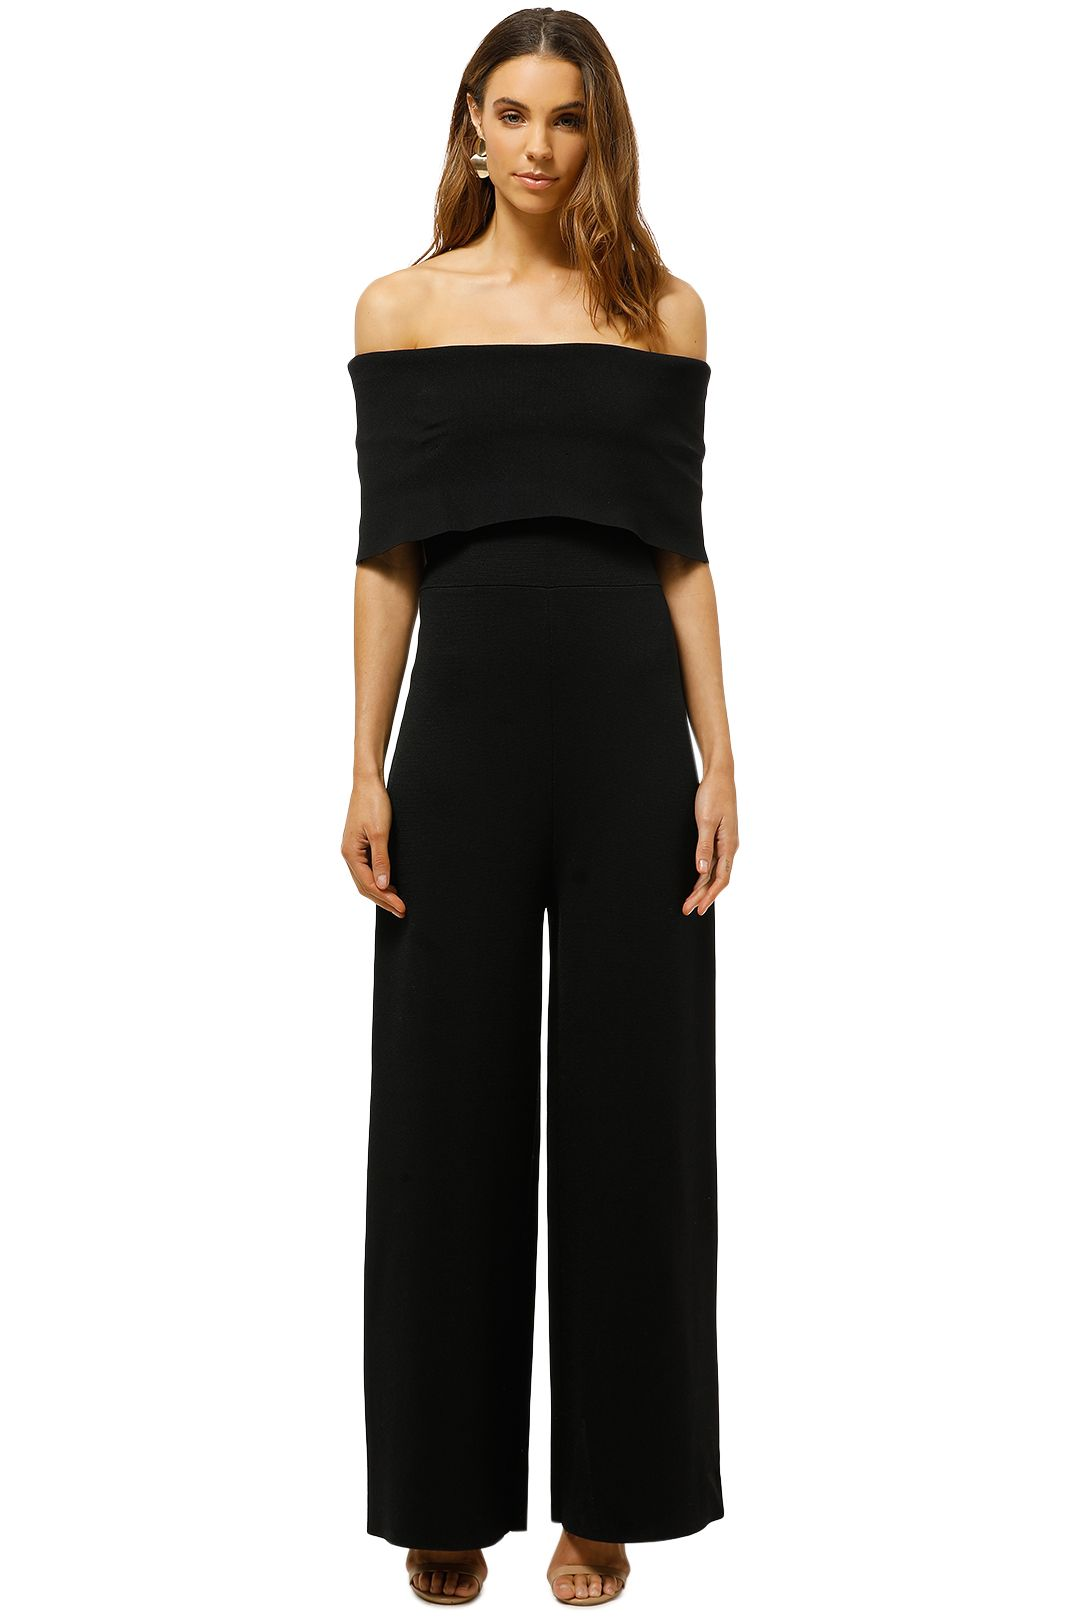 Witchery-Fold-Over-Knit-Jumpsuit-Black-Front